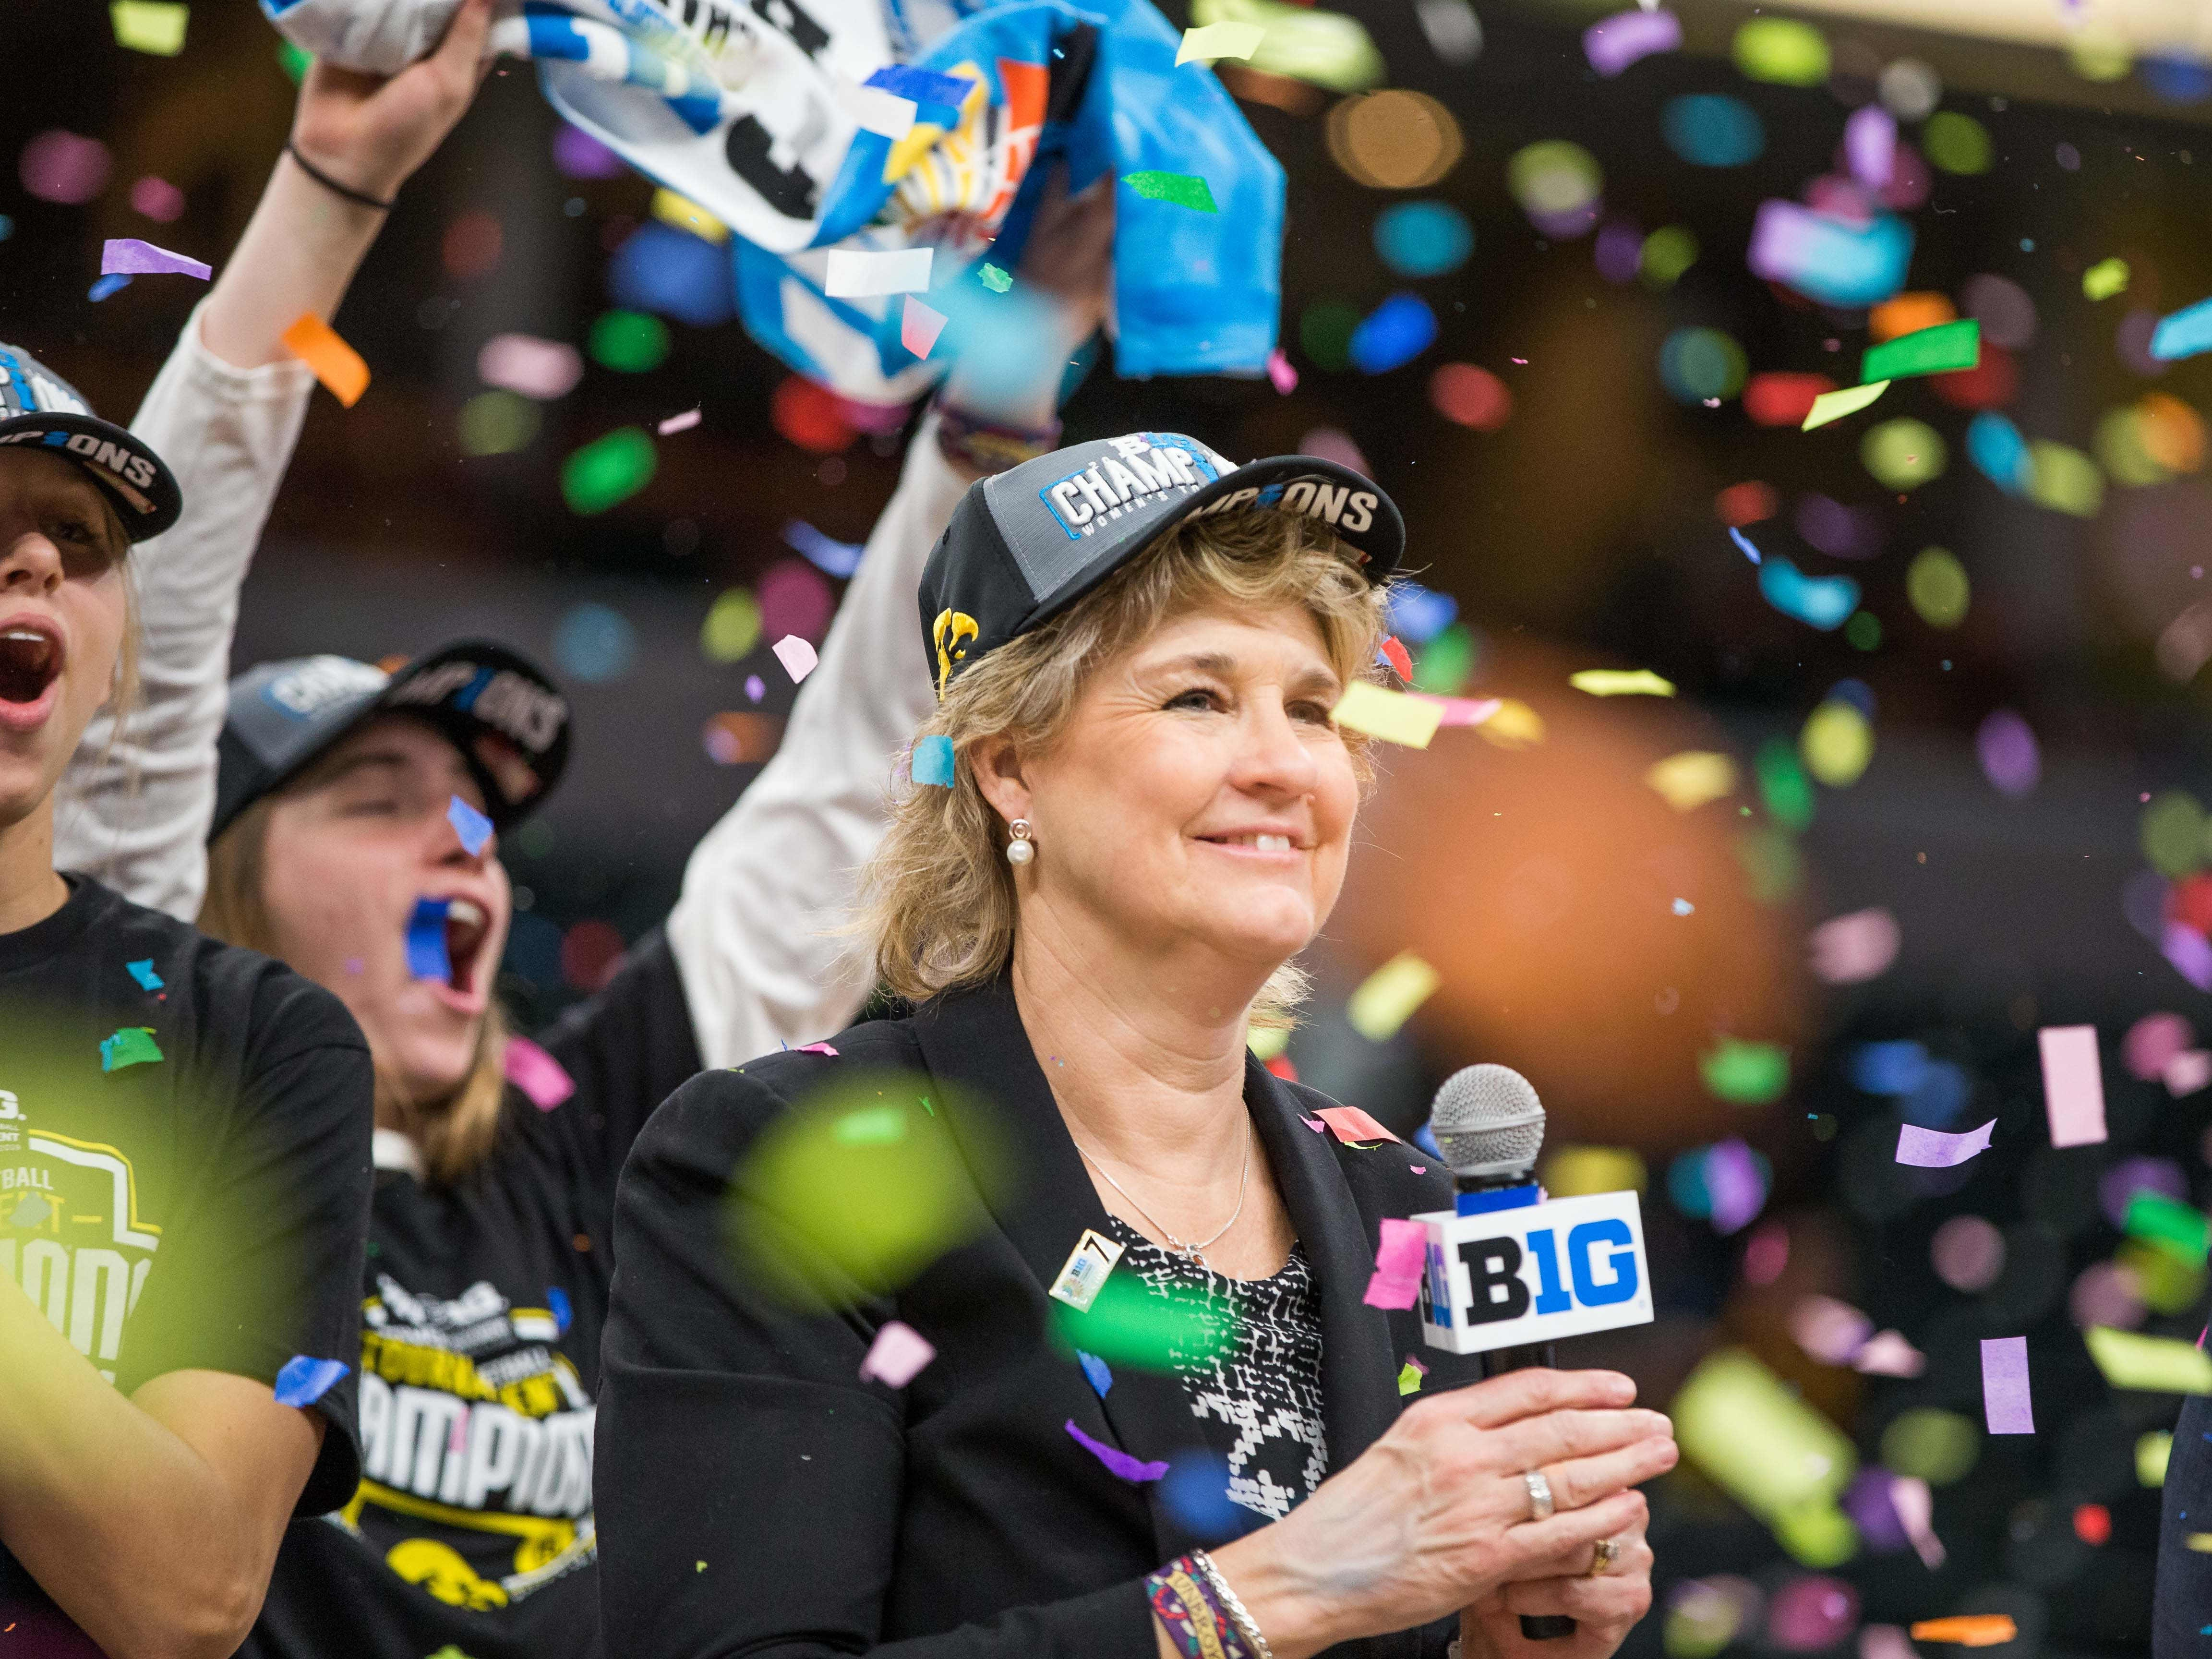 Iowa Hawkeyes head coach Lisa Bluder celebrates the championship victory after the game against the Maryland Terrapins in the women's Big Ten Conference Tournament at Bankers Life Fieldhouse.